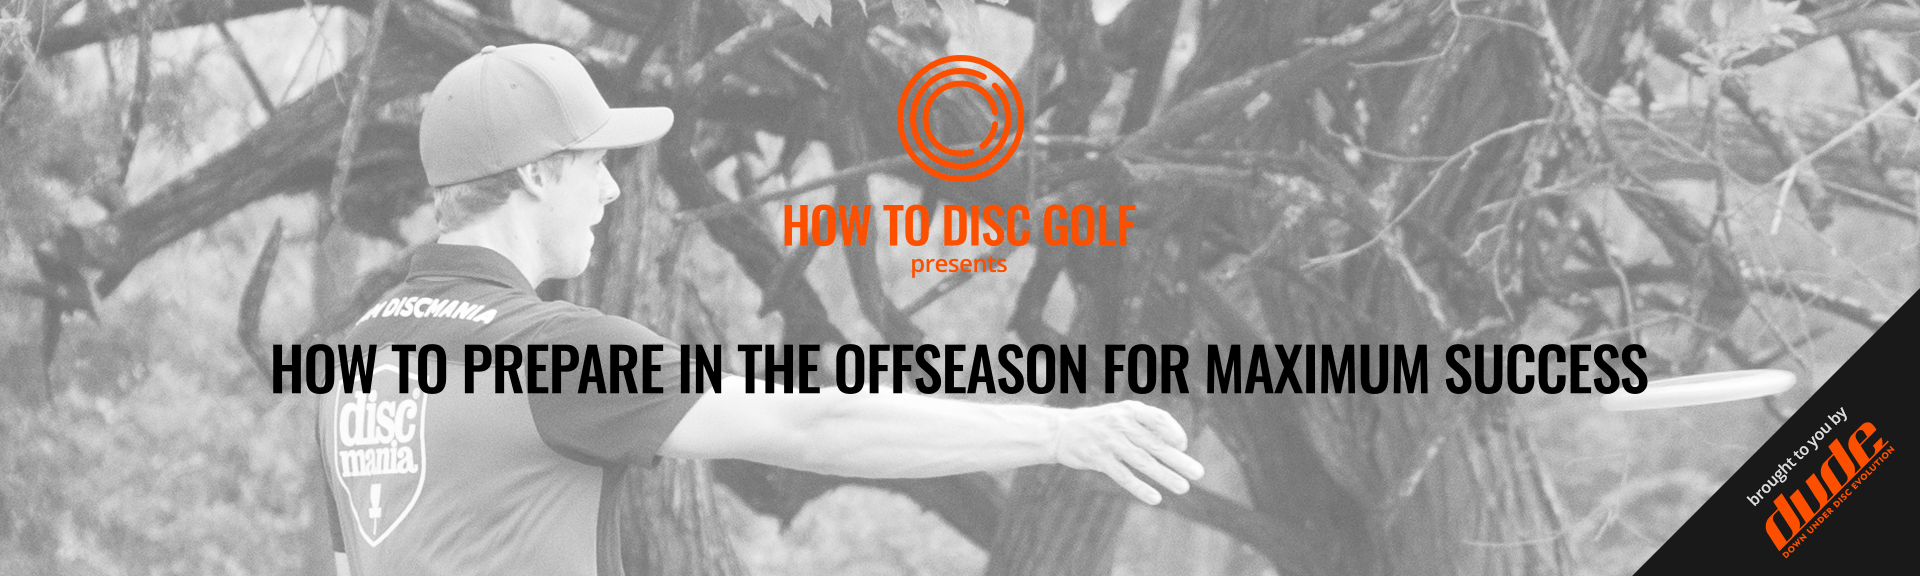 Dude Clothing HOW TO DISC GOLF How To Prepare In The Offseason For Maximum Success